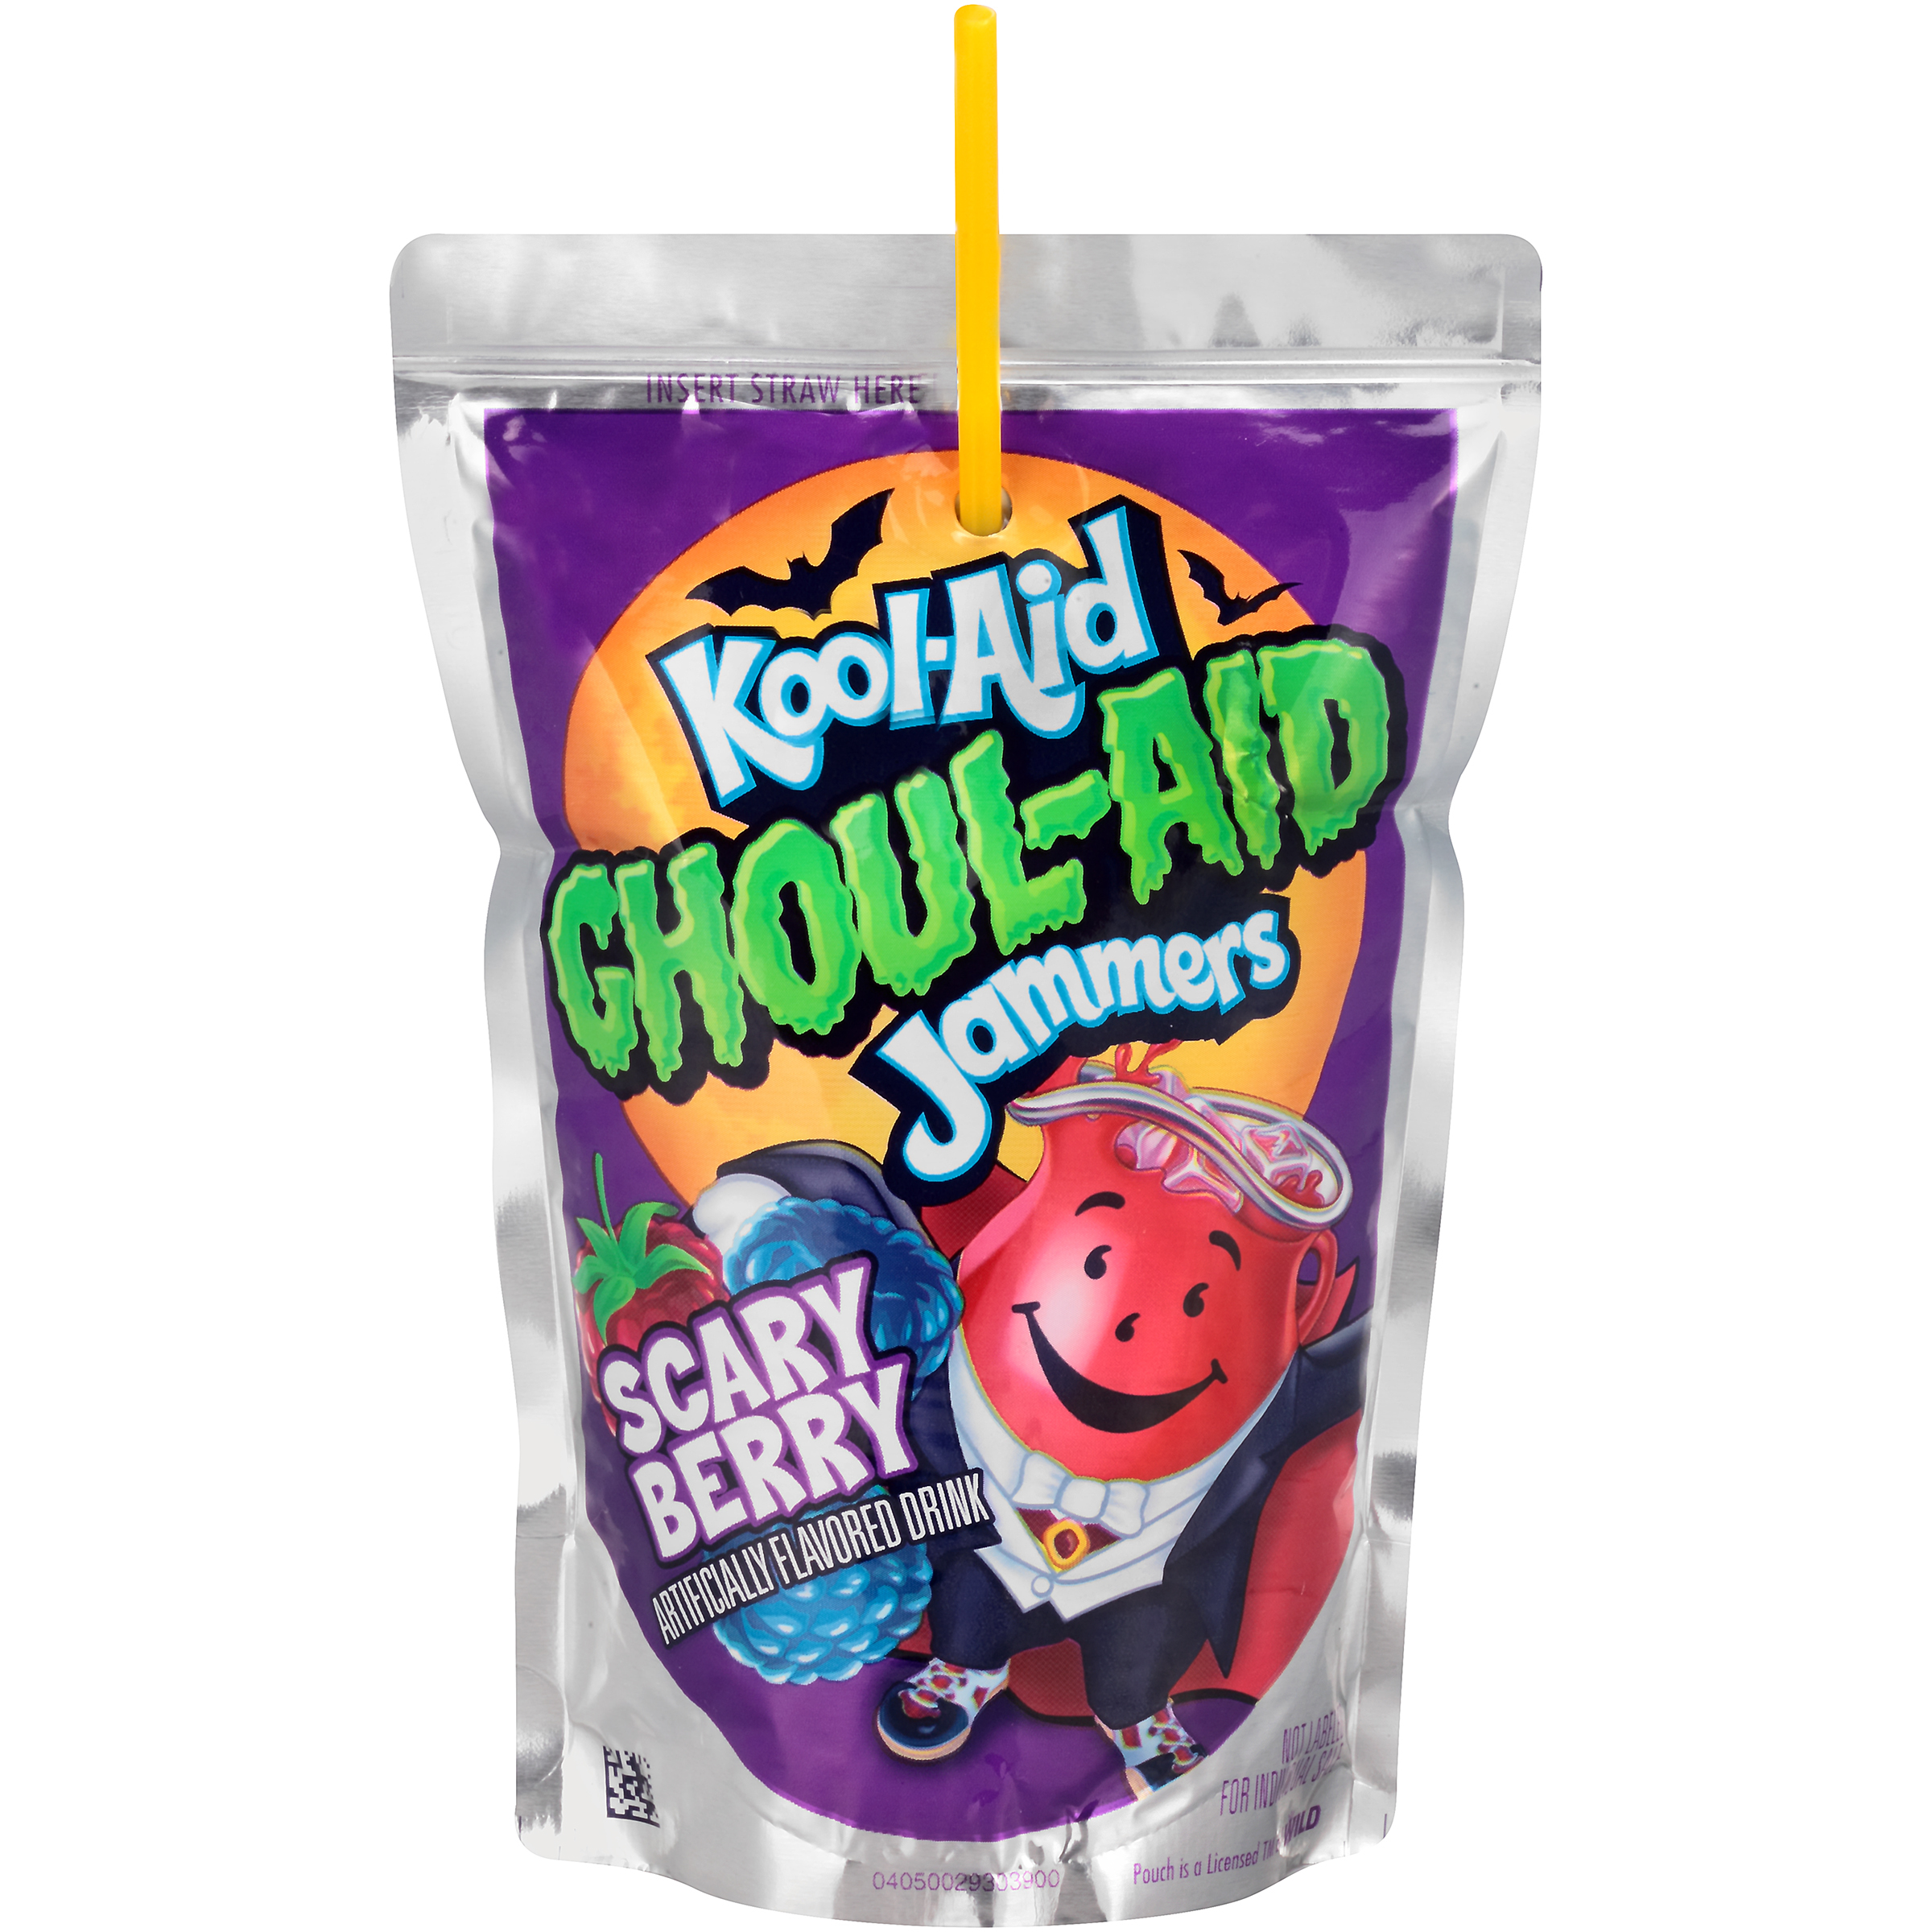 Kool-Aid Jammers Ghoul-Aid Scary Berry Flavored Drink 60 fl oz Box (10-6 fl oz Pouches) image